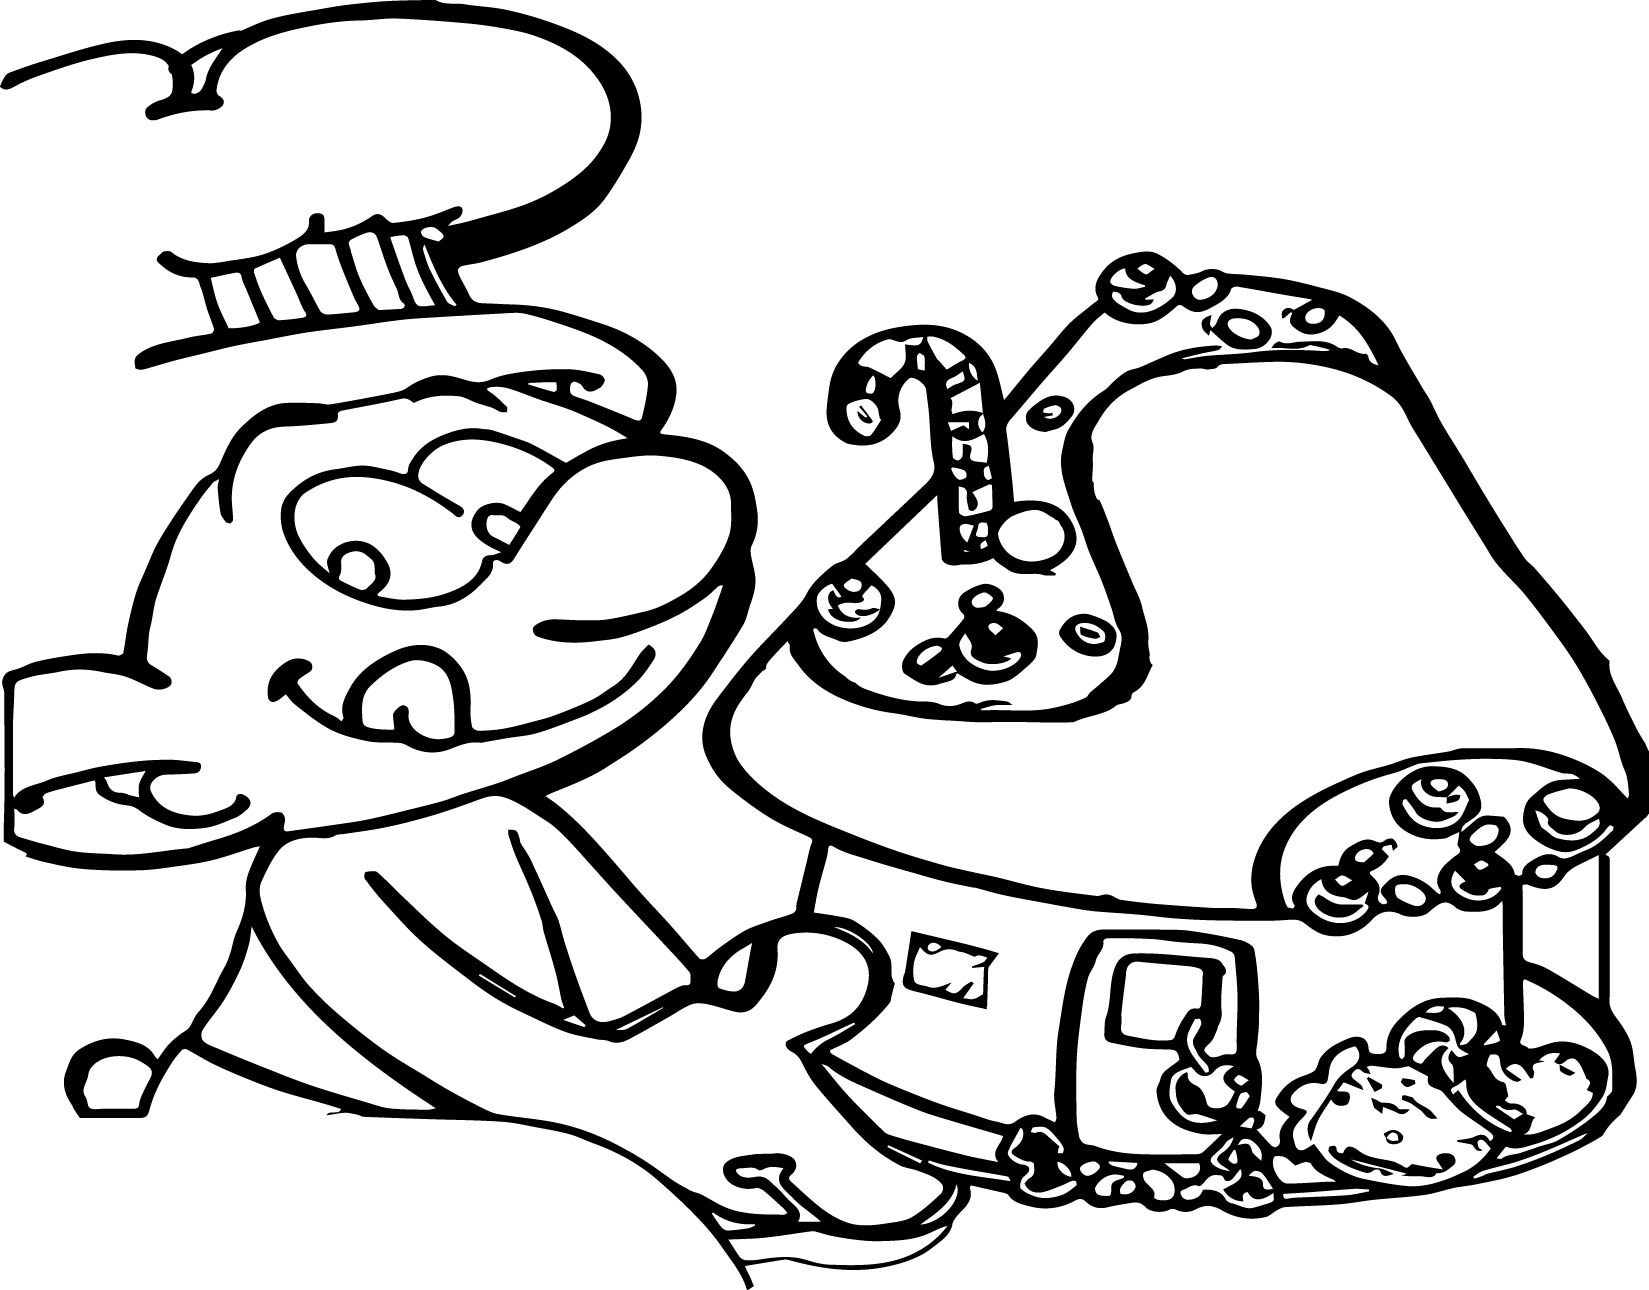 Max And Ruby Bunny Cakes Coloring Pages | giftsforsubs